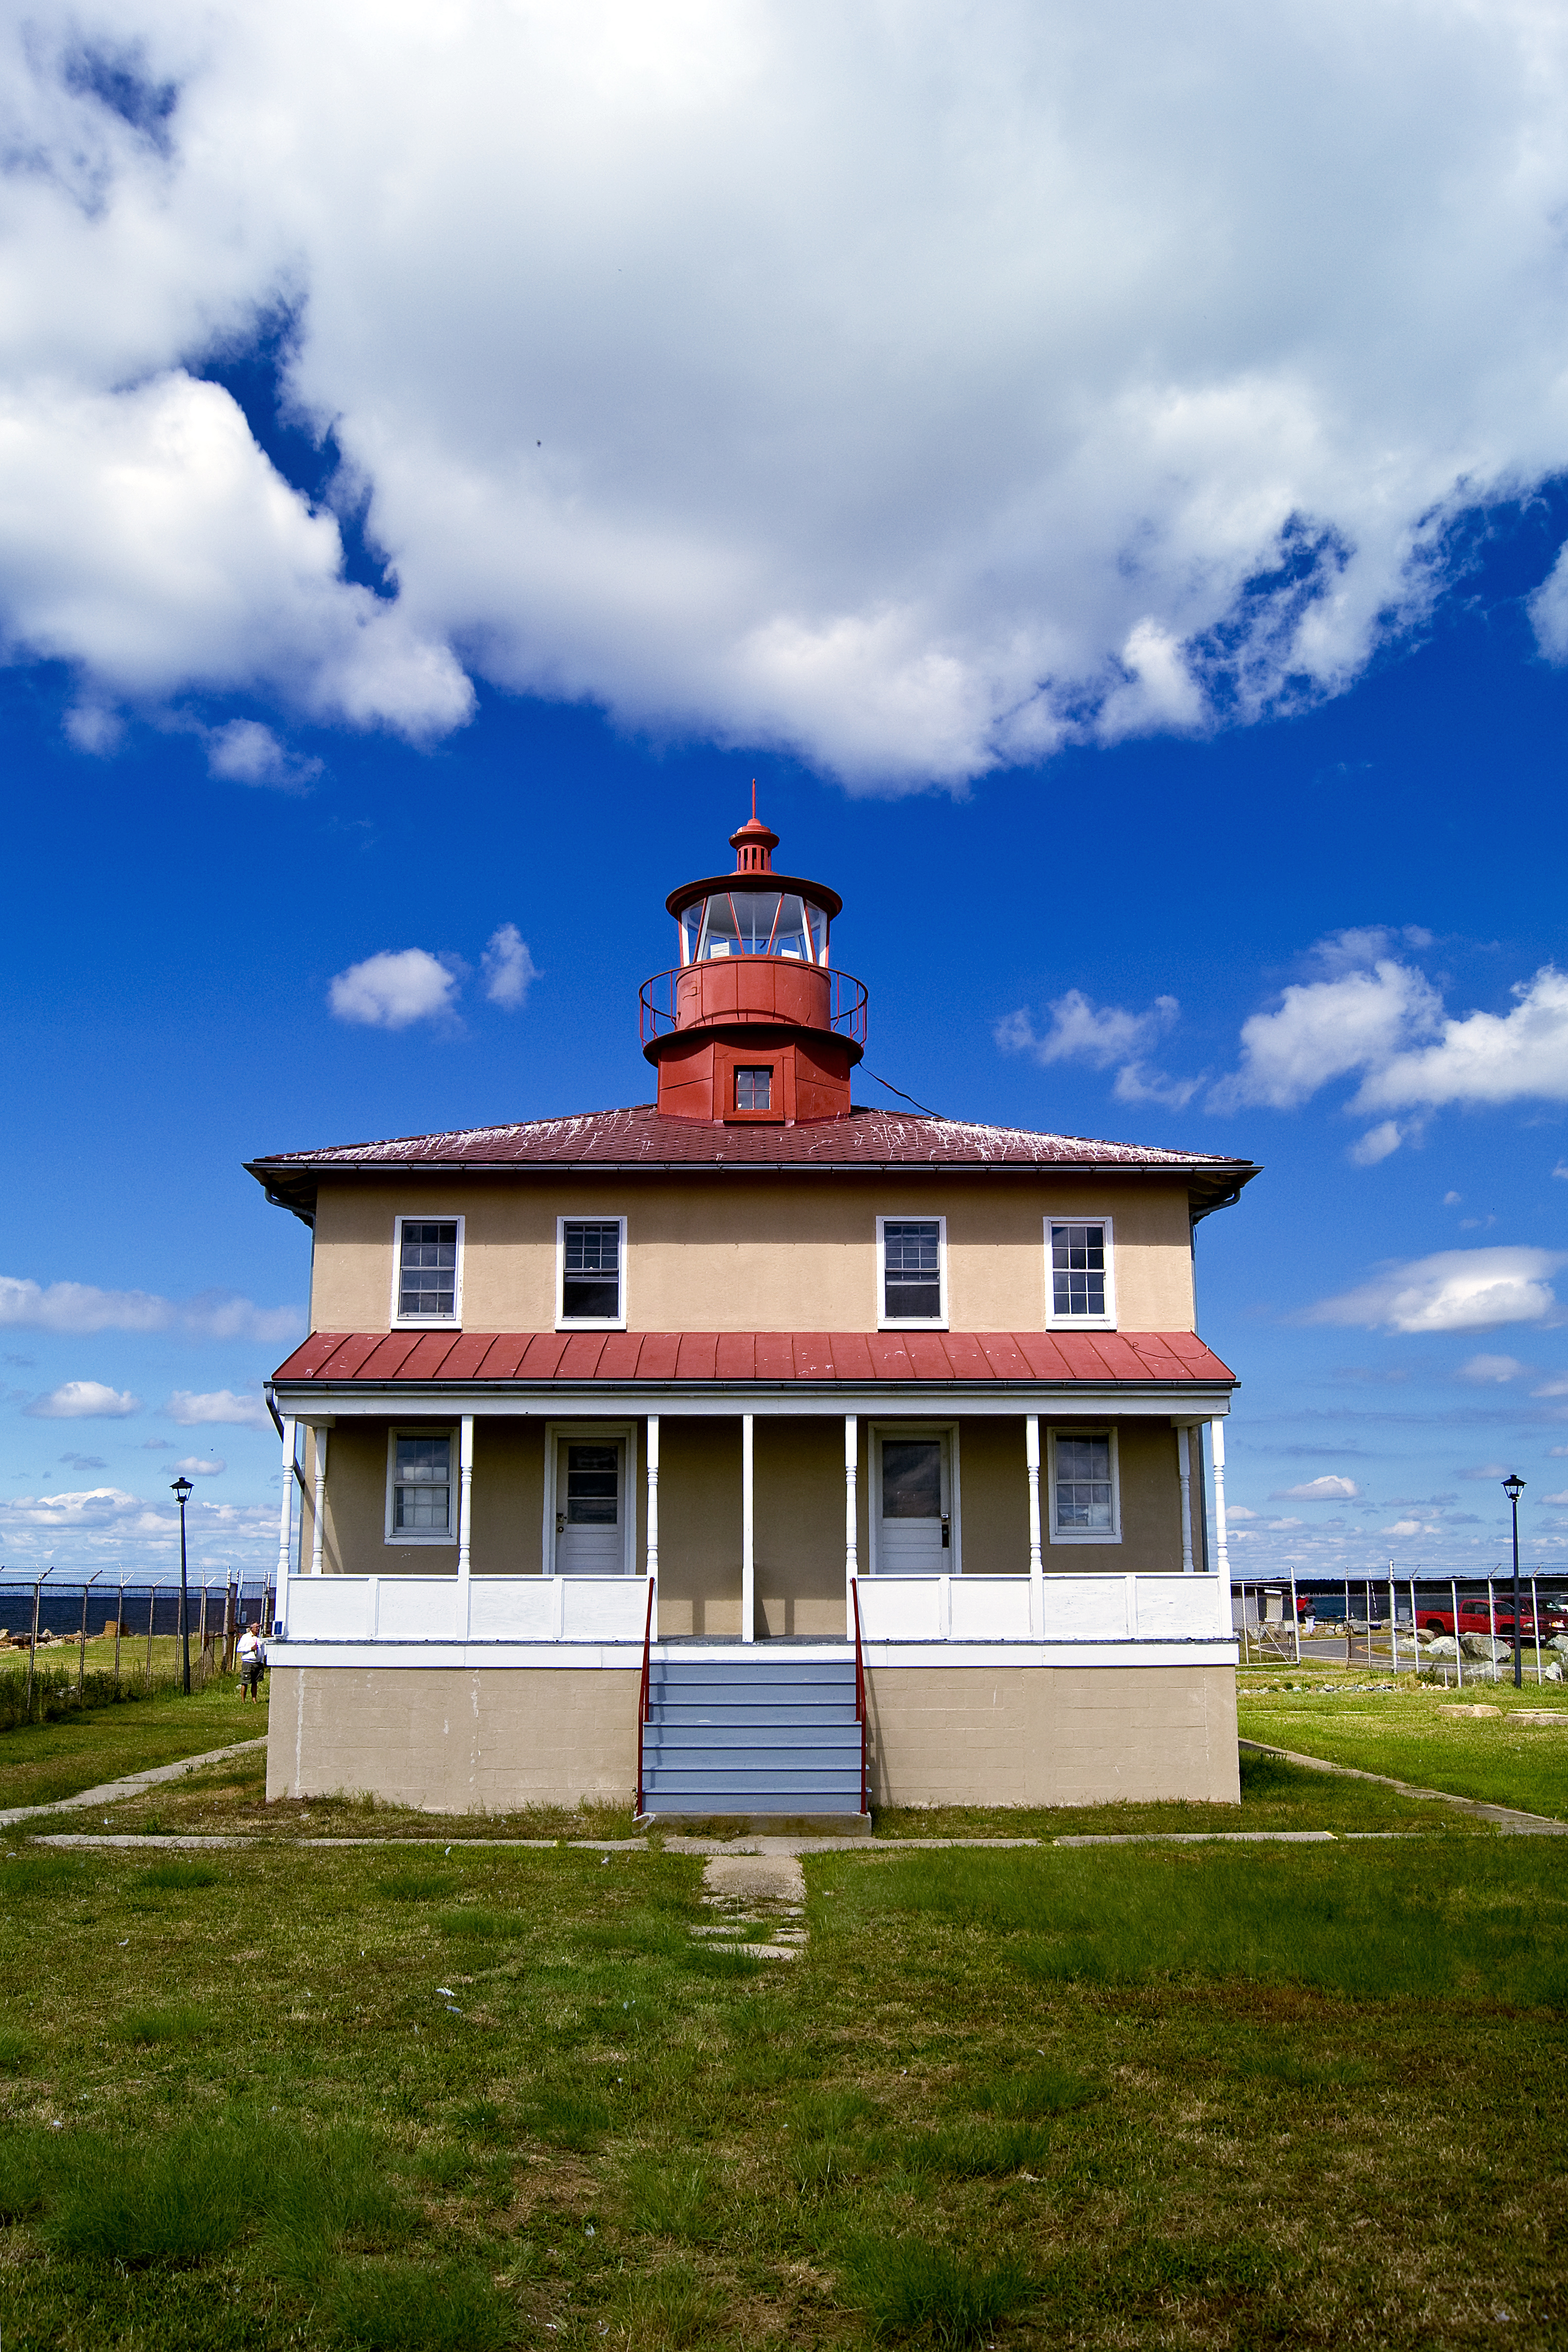 Point Lookout Scotland Maryland ghosts haunted Lighthouse